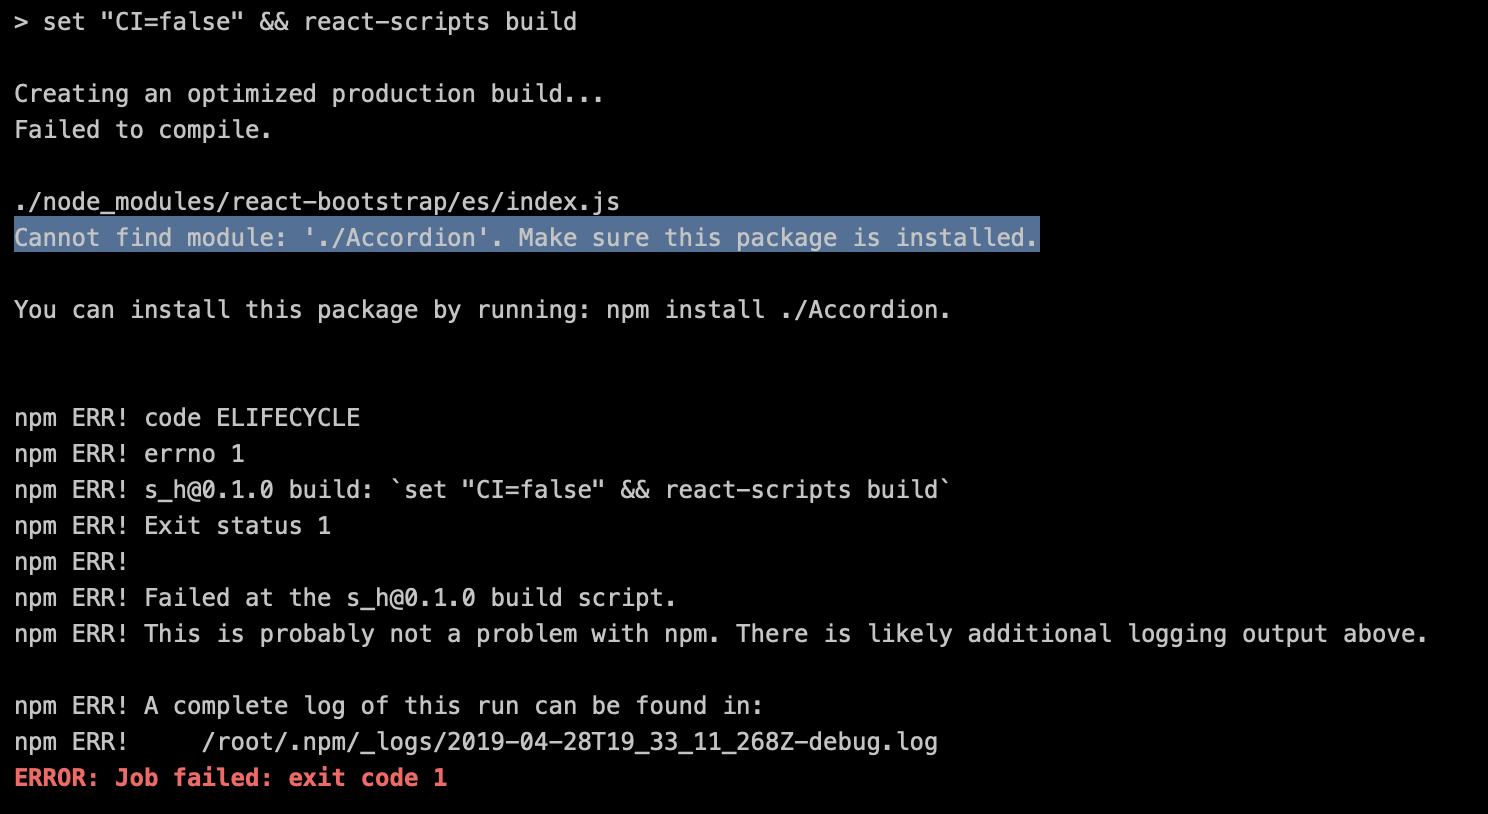 GitLab CI build fails - due to missing modules · Issue #3714